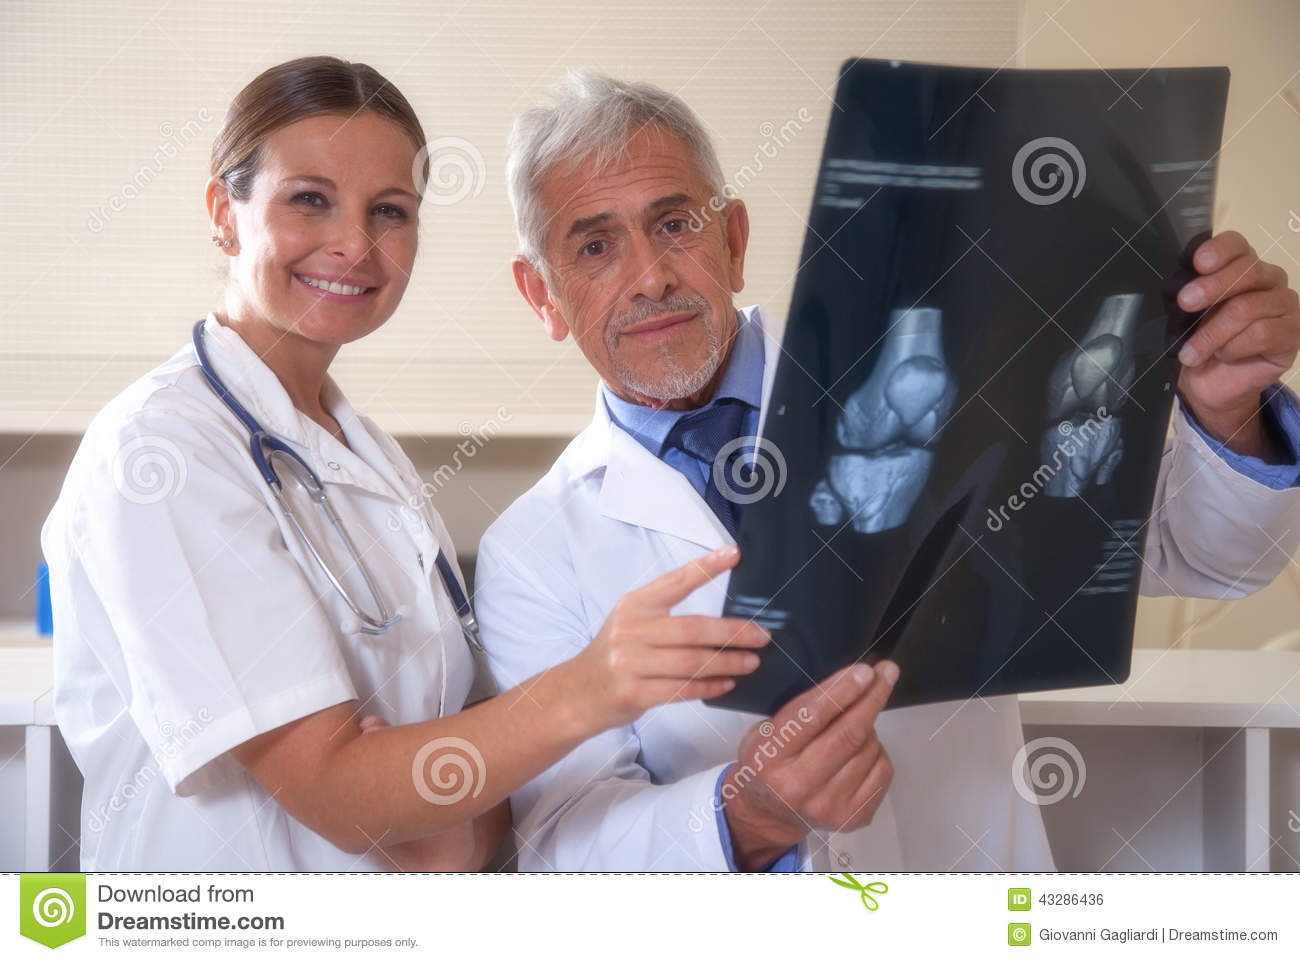 Male and female doctors smiling examining x-ray test results.